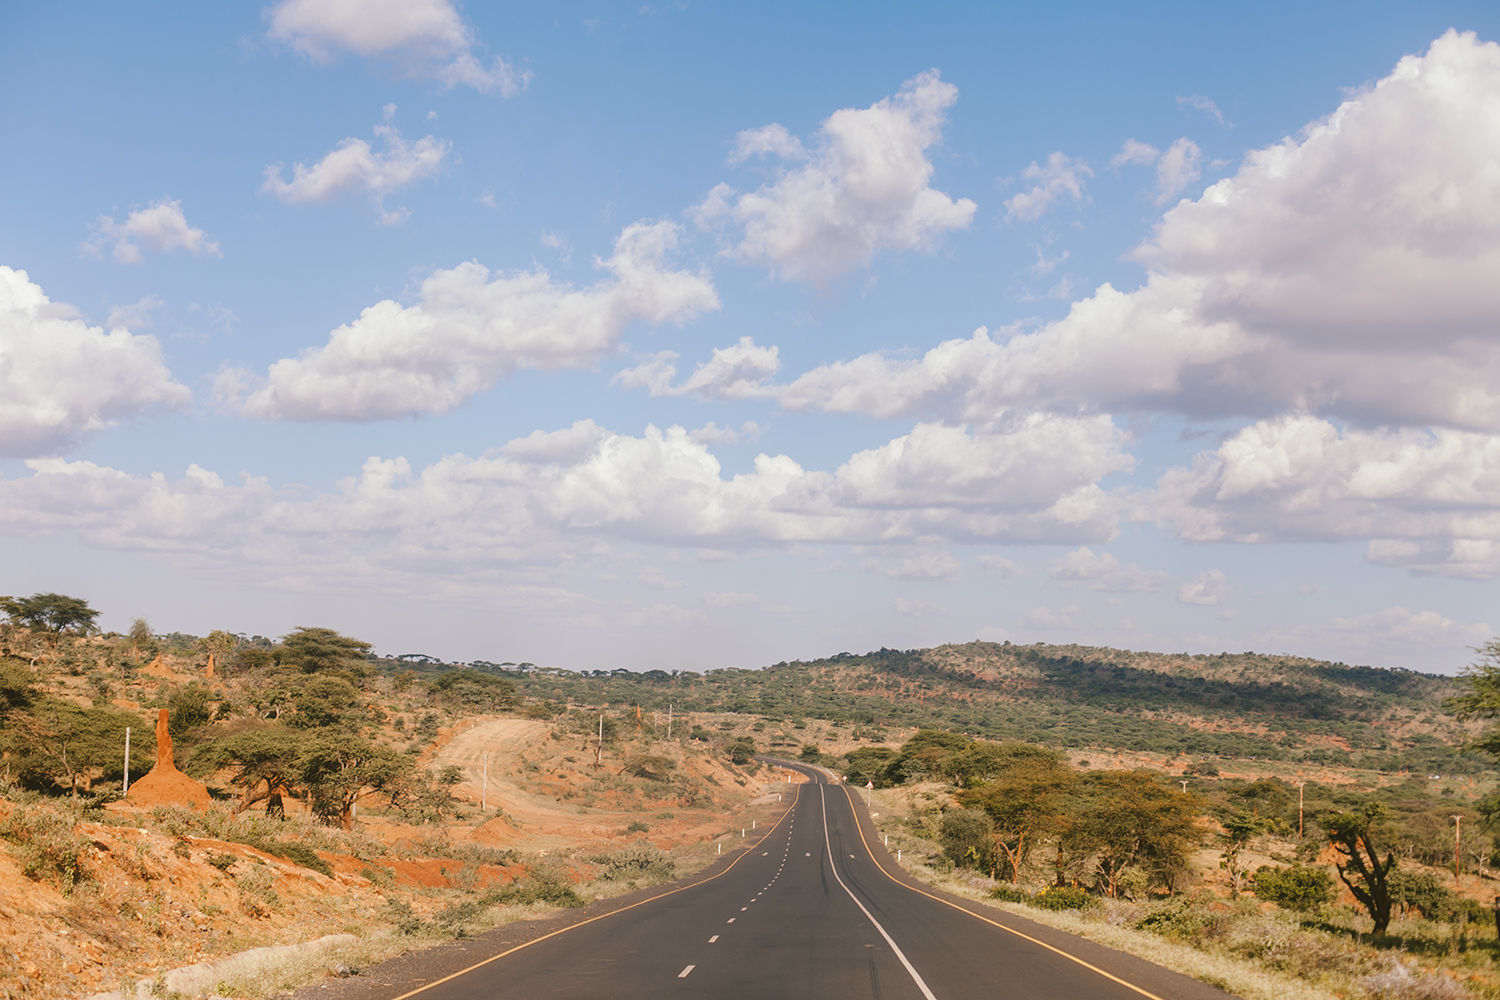 How to get from Addis Ababa to Nairobi (or Mombasa) on